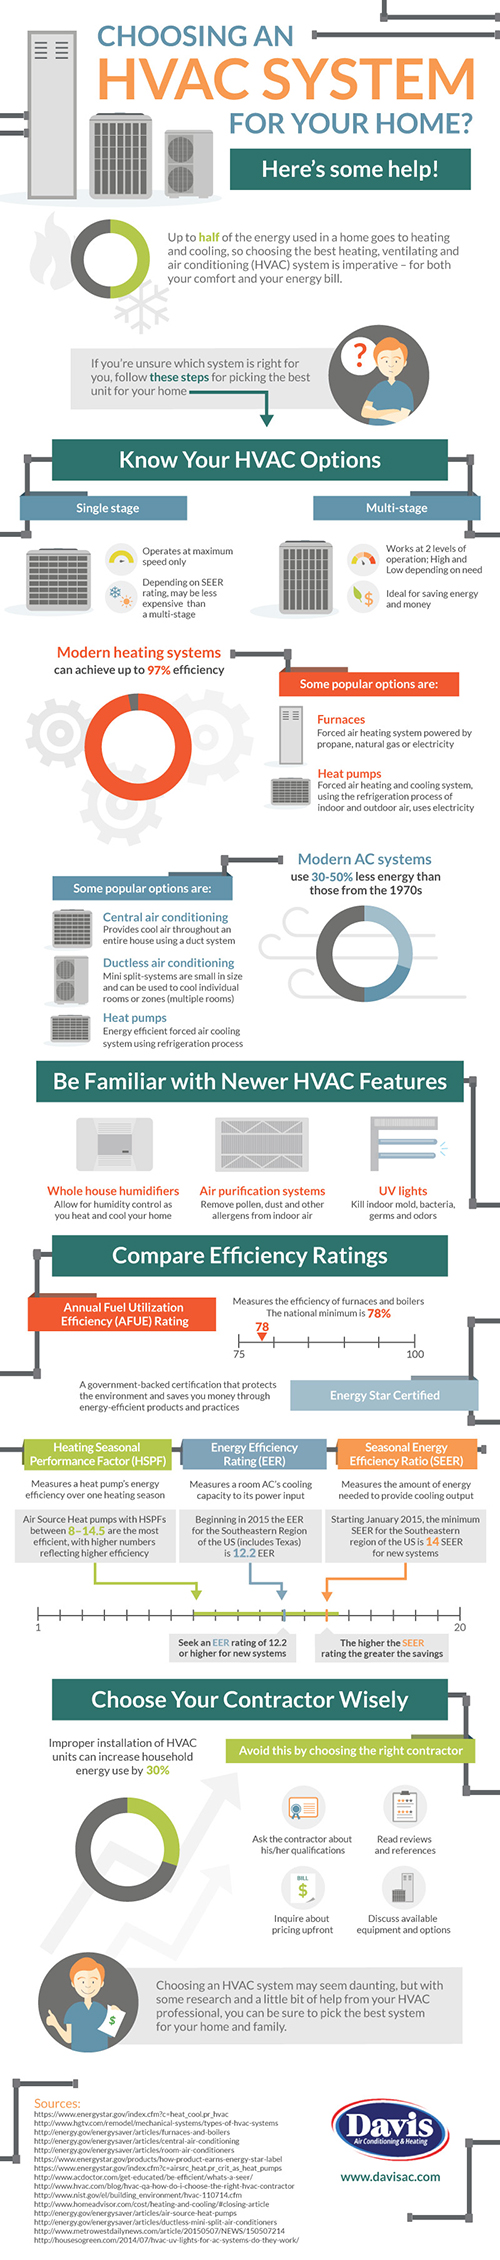 Choose-the-Right-HVAC-System-for-Your-Home Info-Graphic